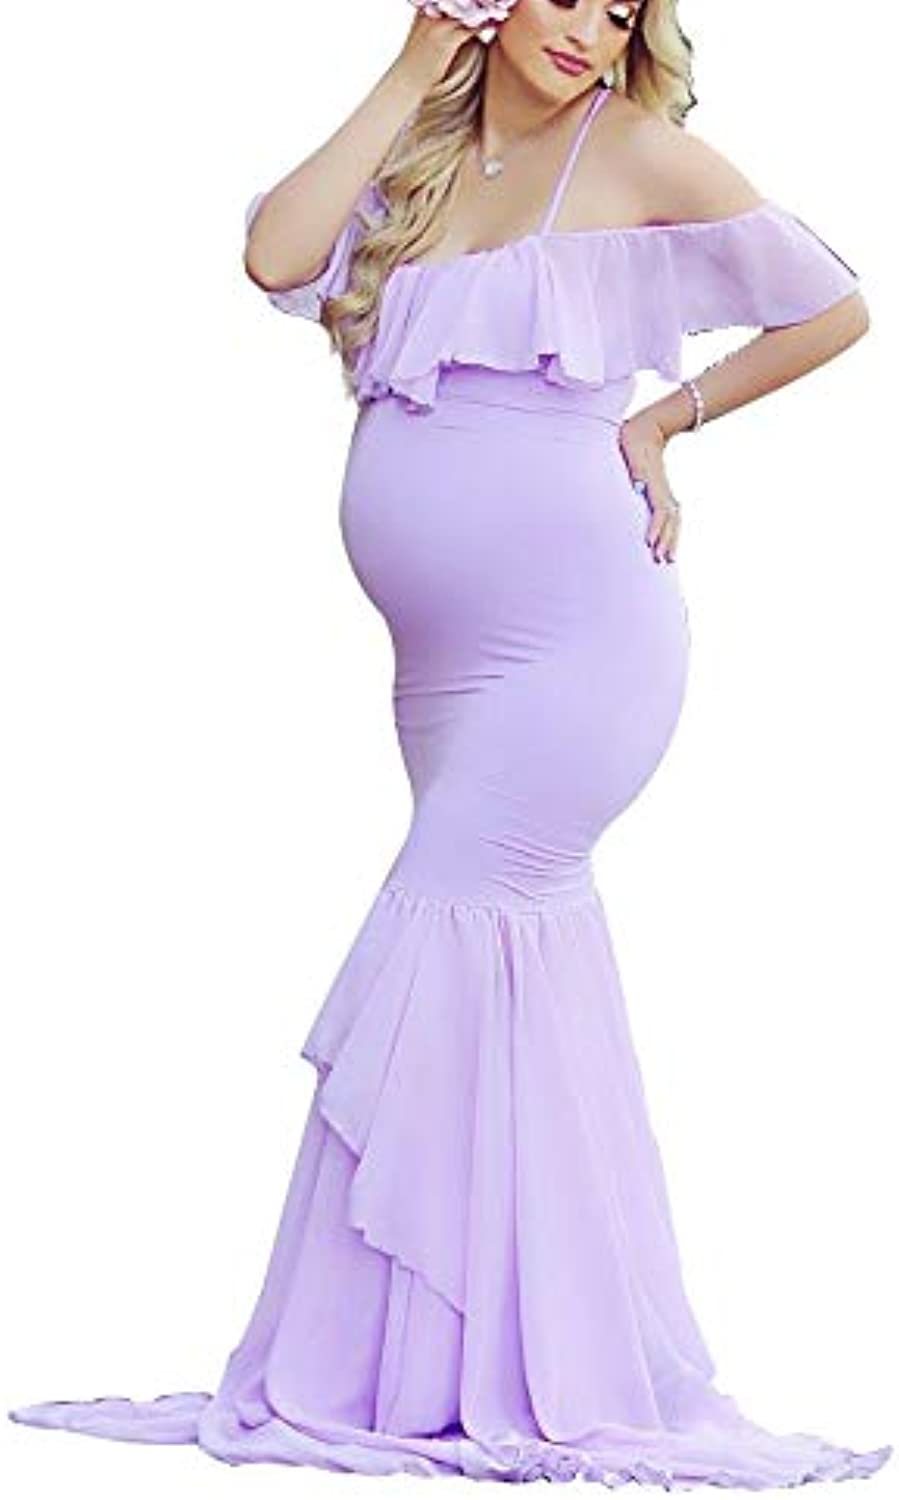 Maternity Dress Off Shoulder Sleeveless Slim Long Maternitys Fitted Flare Ruffles Sleeve Fit Gown Pregnant Women Maxi Photography Dress Gown Mermaid,Purple,XL